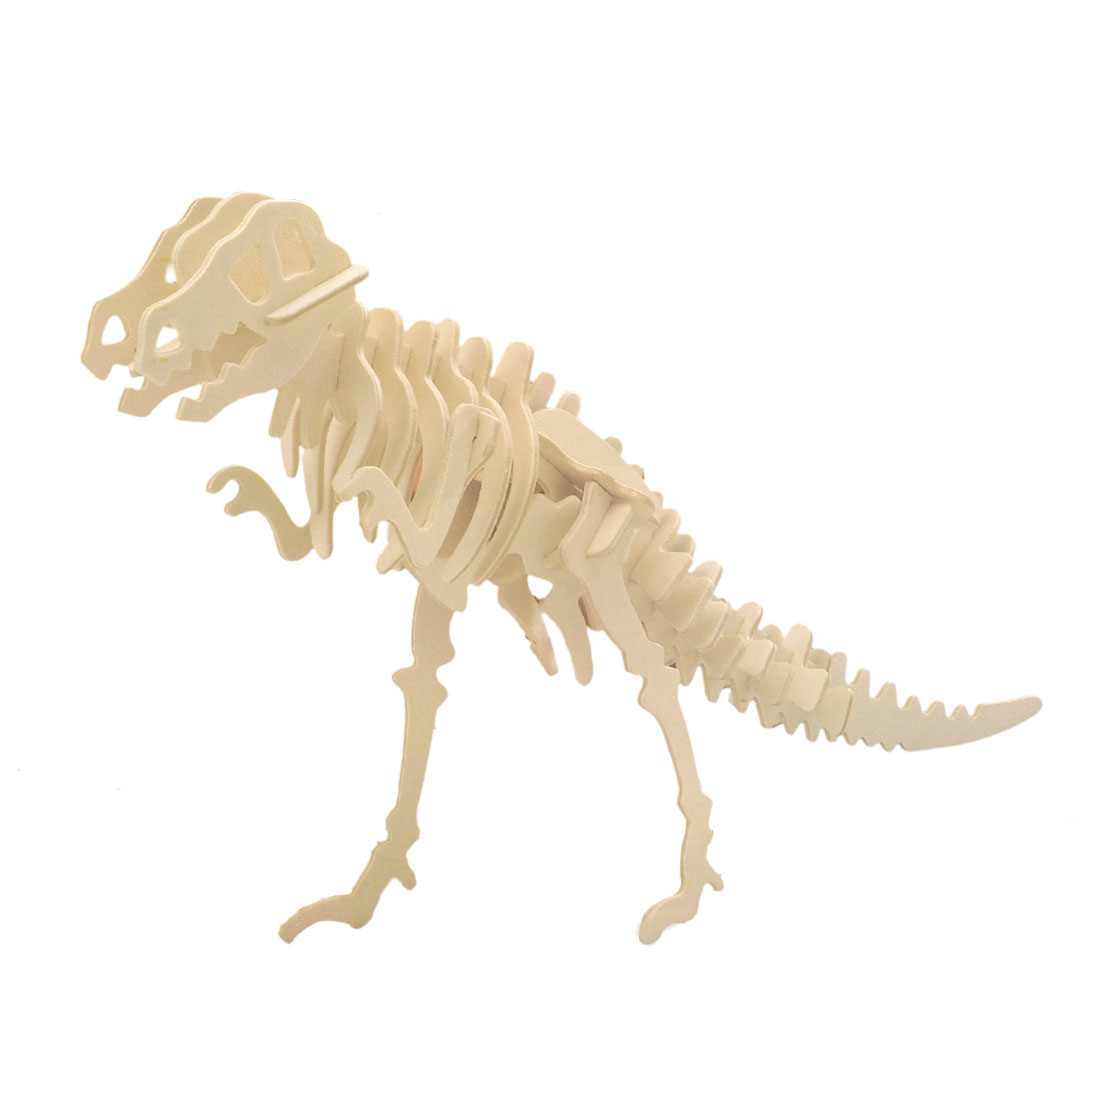 3D Wood Tyrannosaurus Woodcraft Construction Kit Educational Assembling Toy